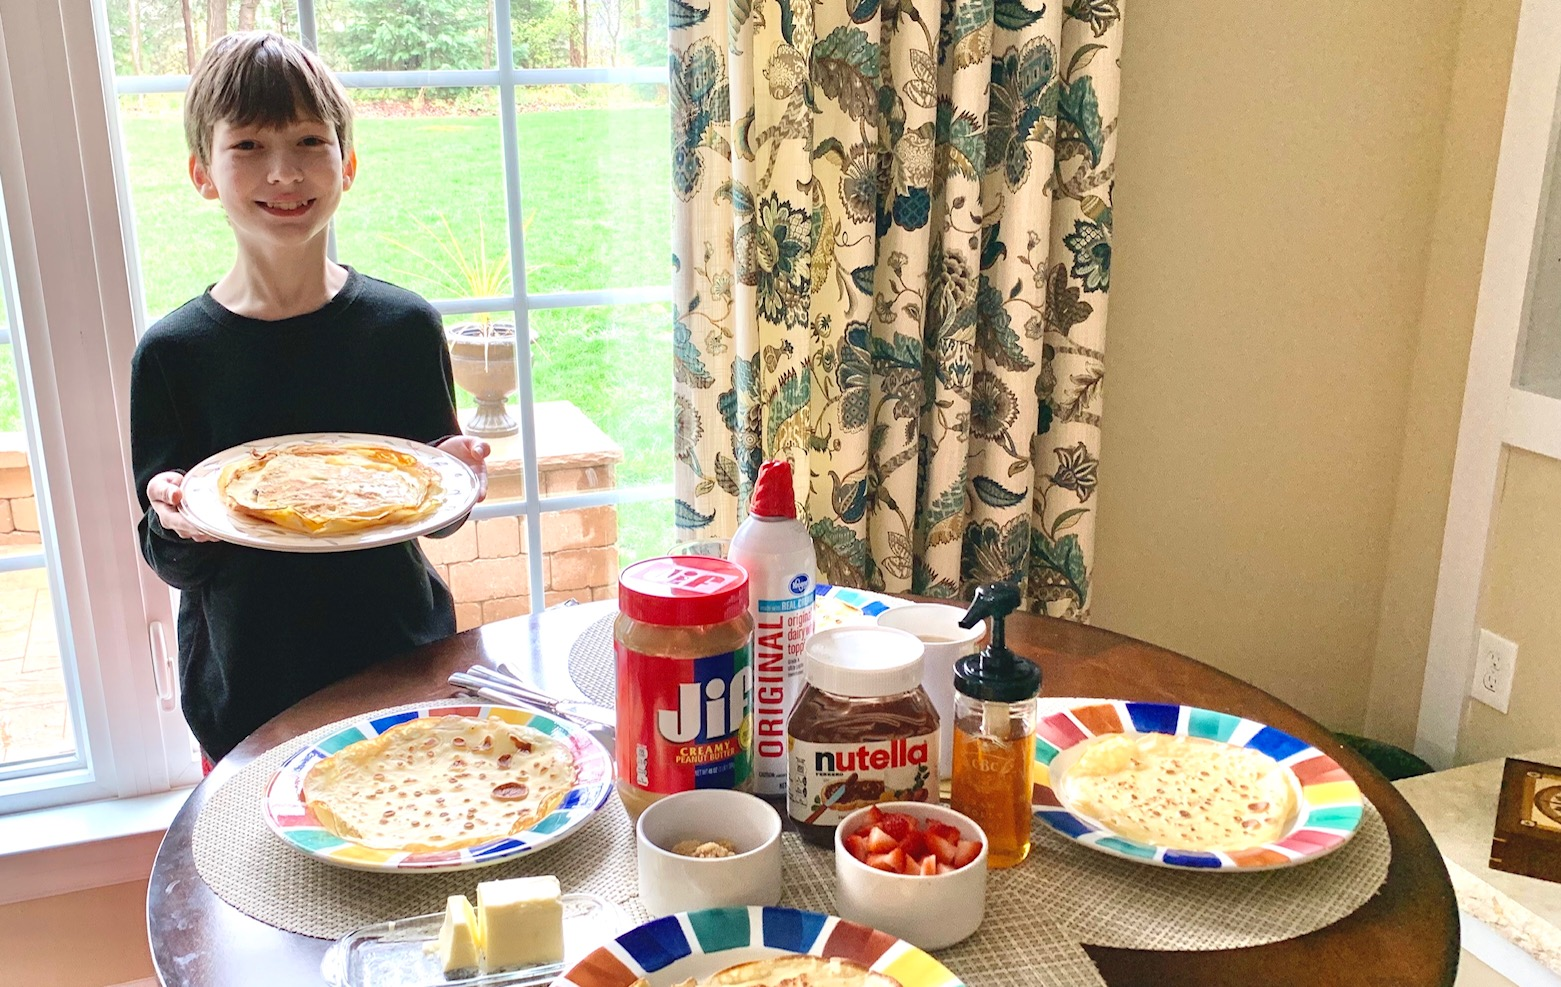 Margaret's Crêpes! A Family Favorite That's Easier Than You Think